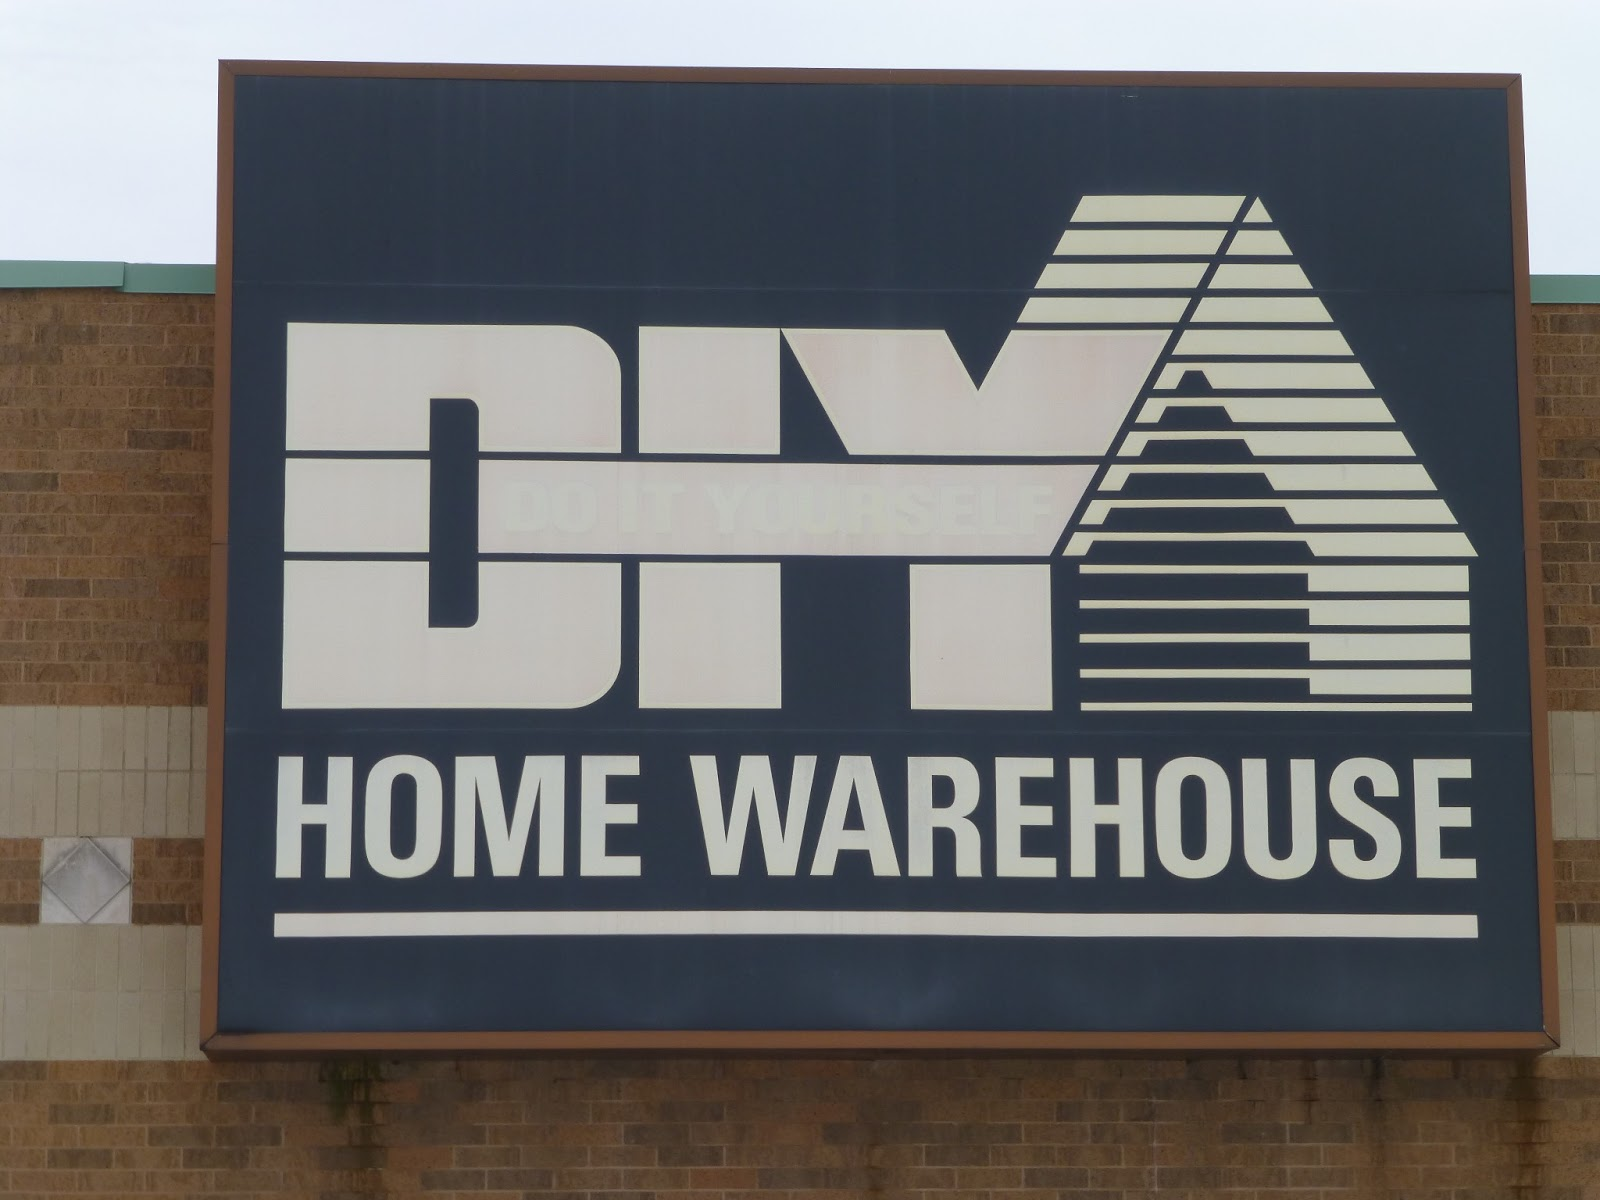 D.I.Y. Home Warehouse focuses on operations01